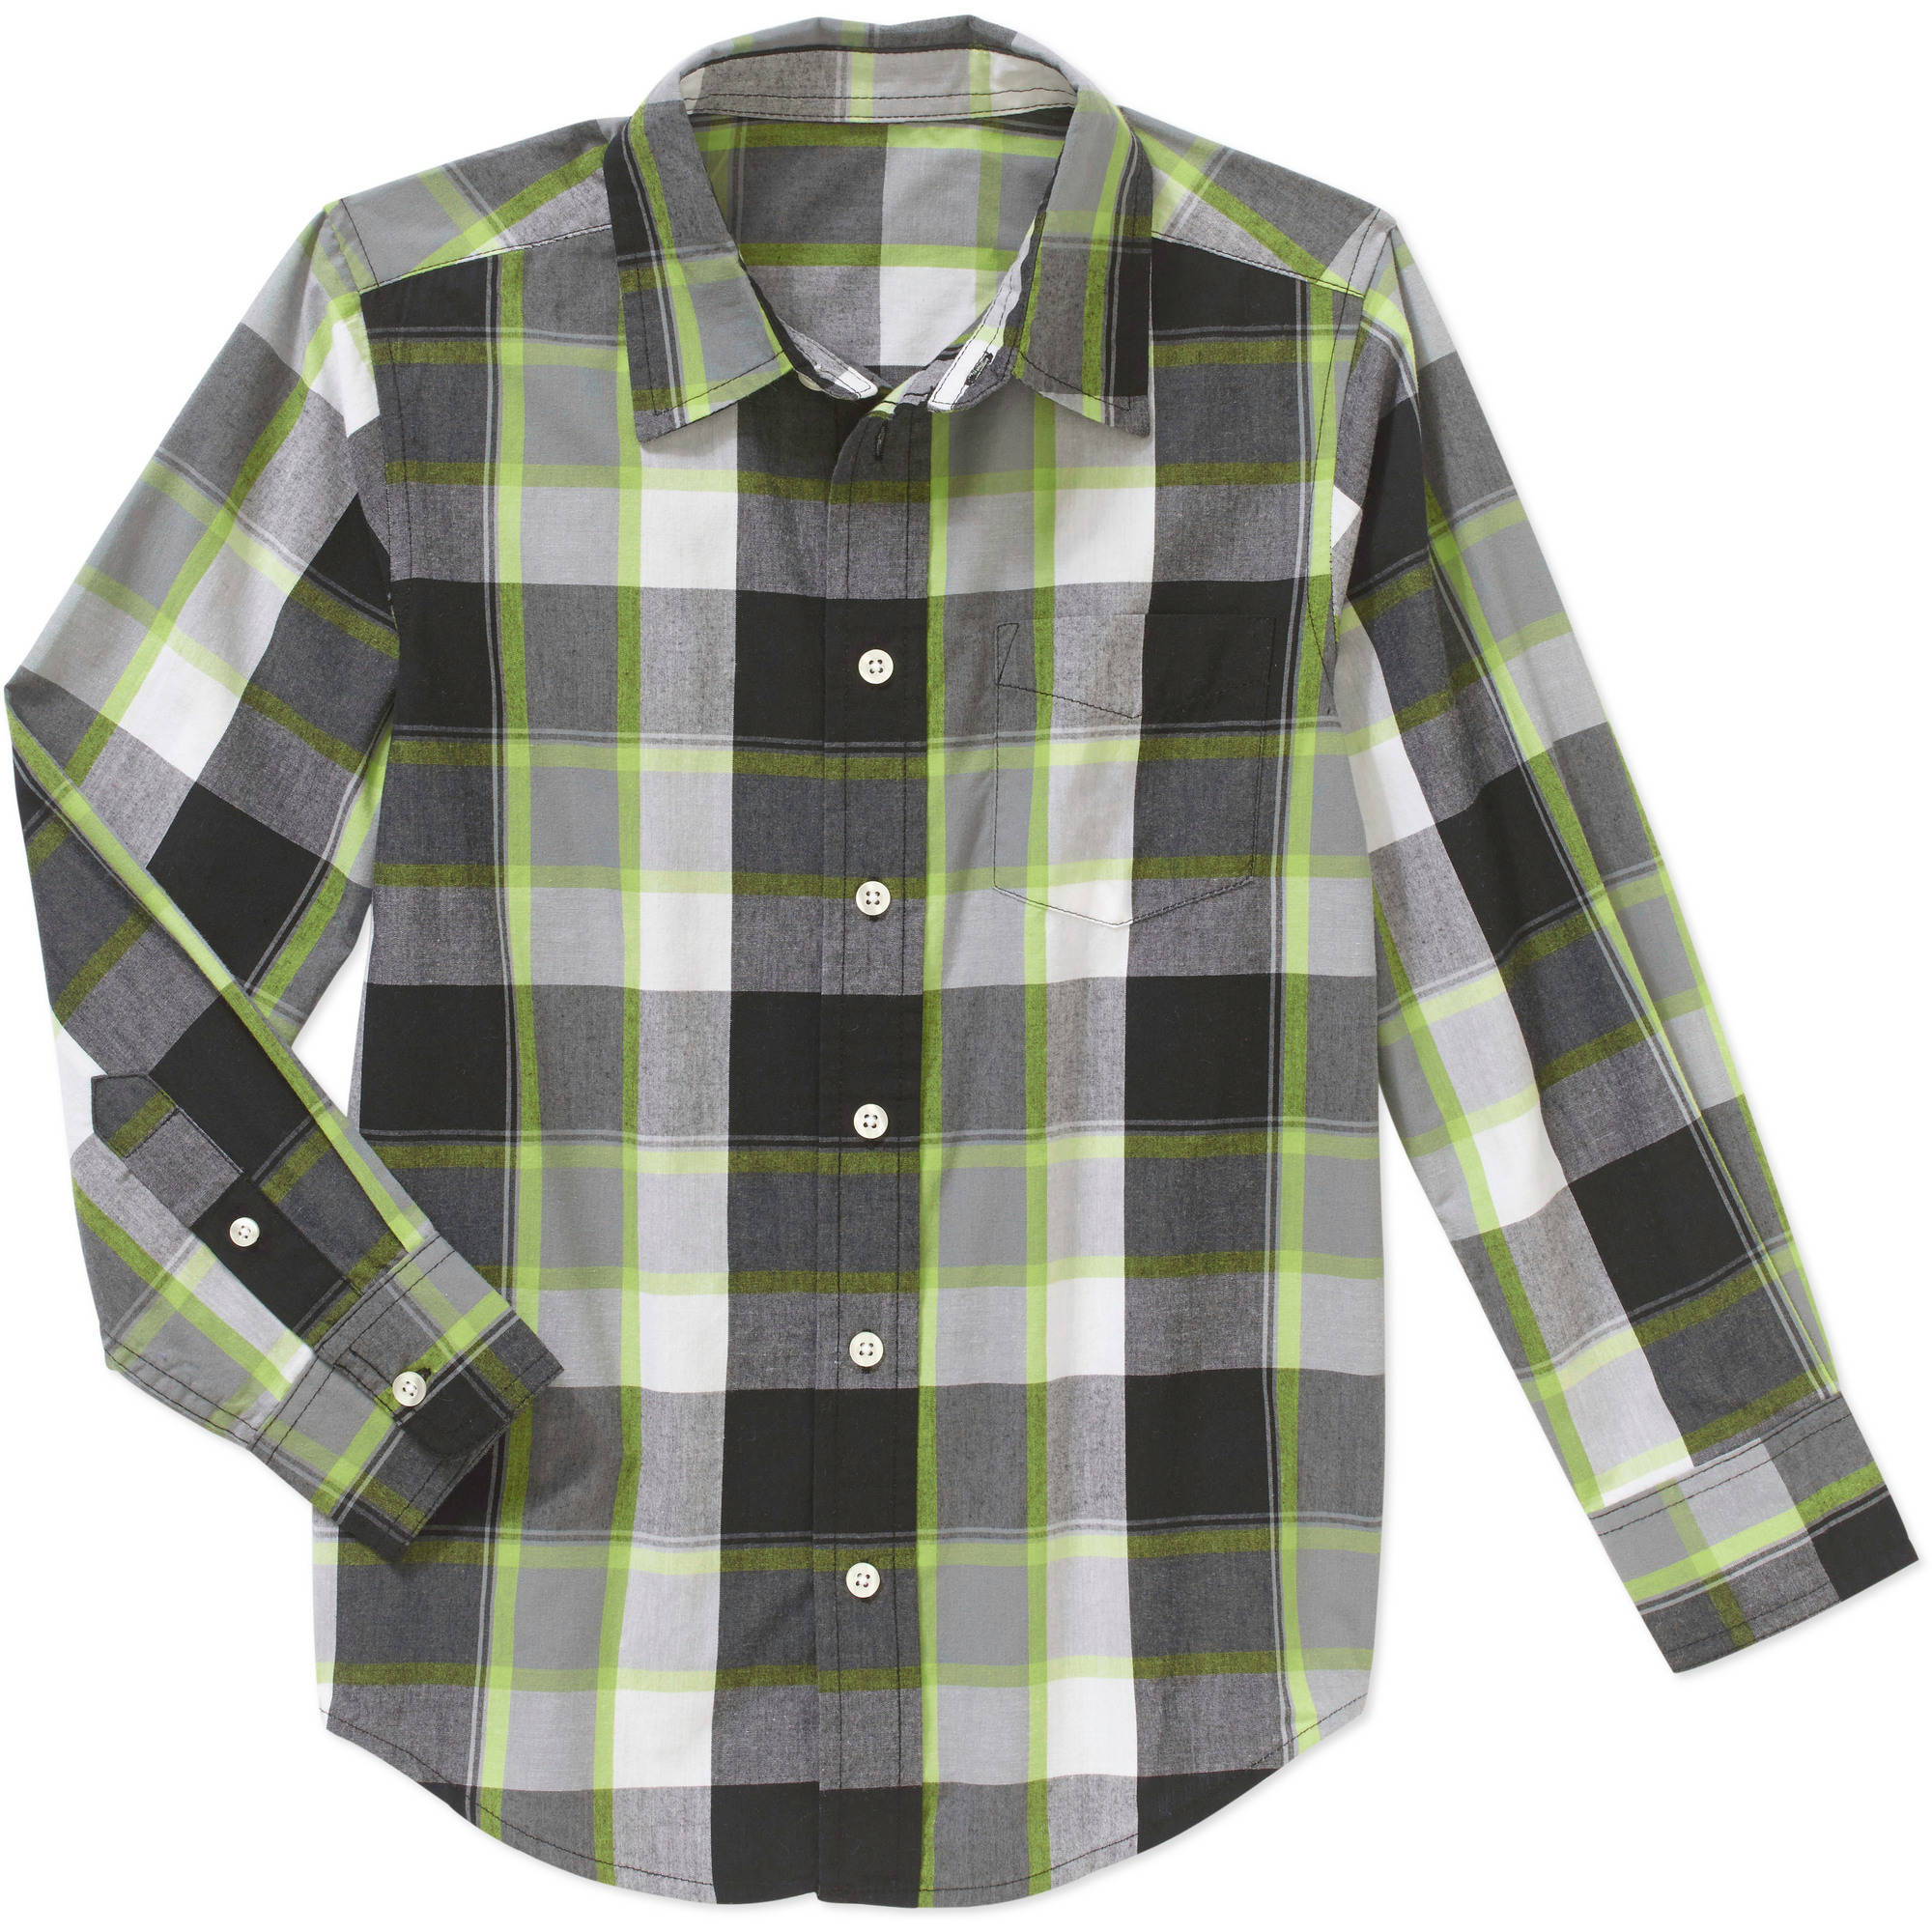 Wrangler Boys' Long Sleeve Plaid Poplin Woven Shirt